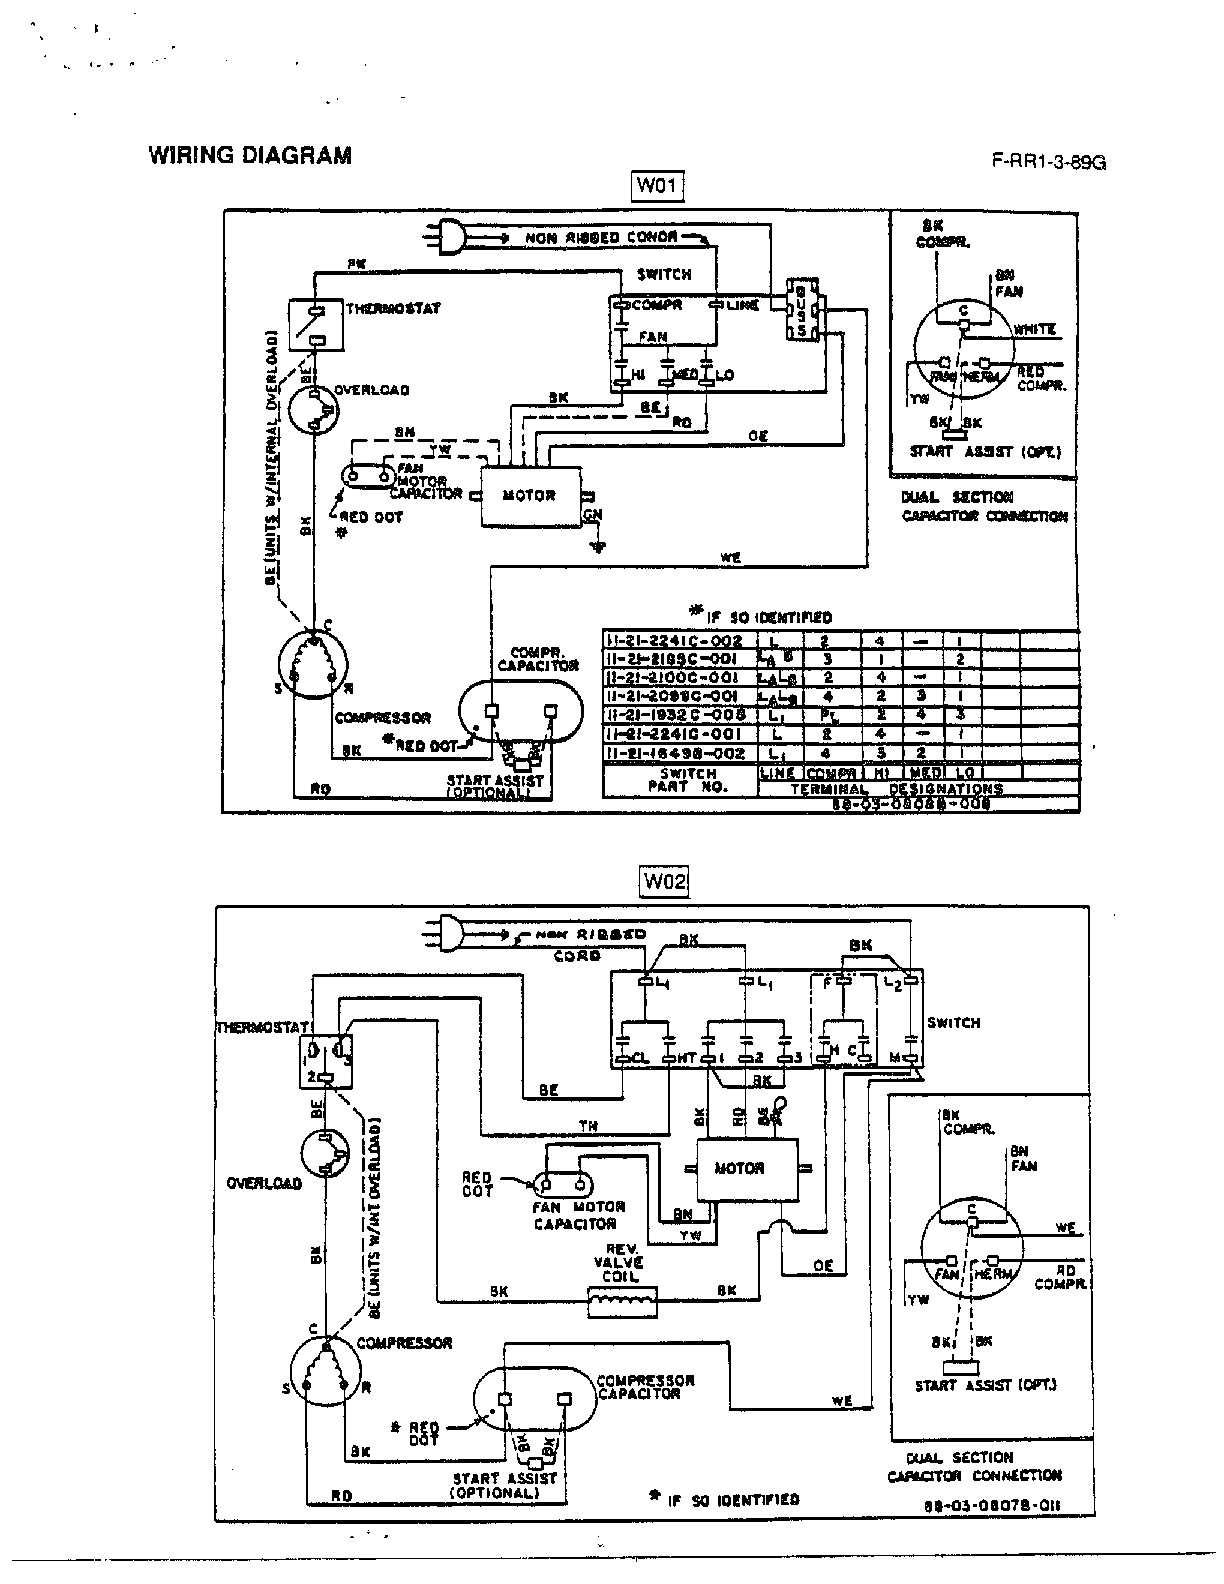 hight resolution of funny wiring diagrams electrical wiring diagram fun wiring diagram wiring diagram new